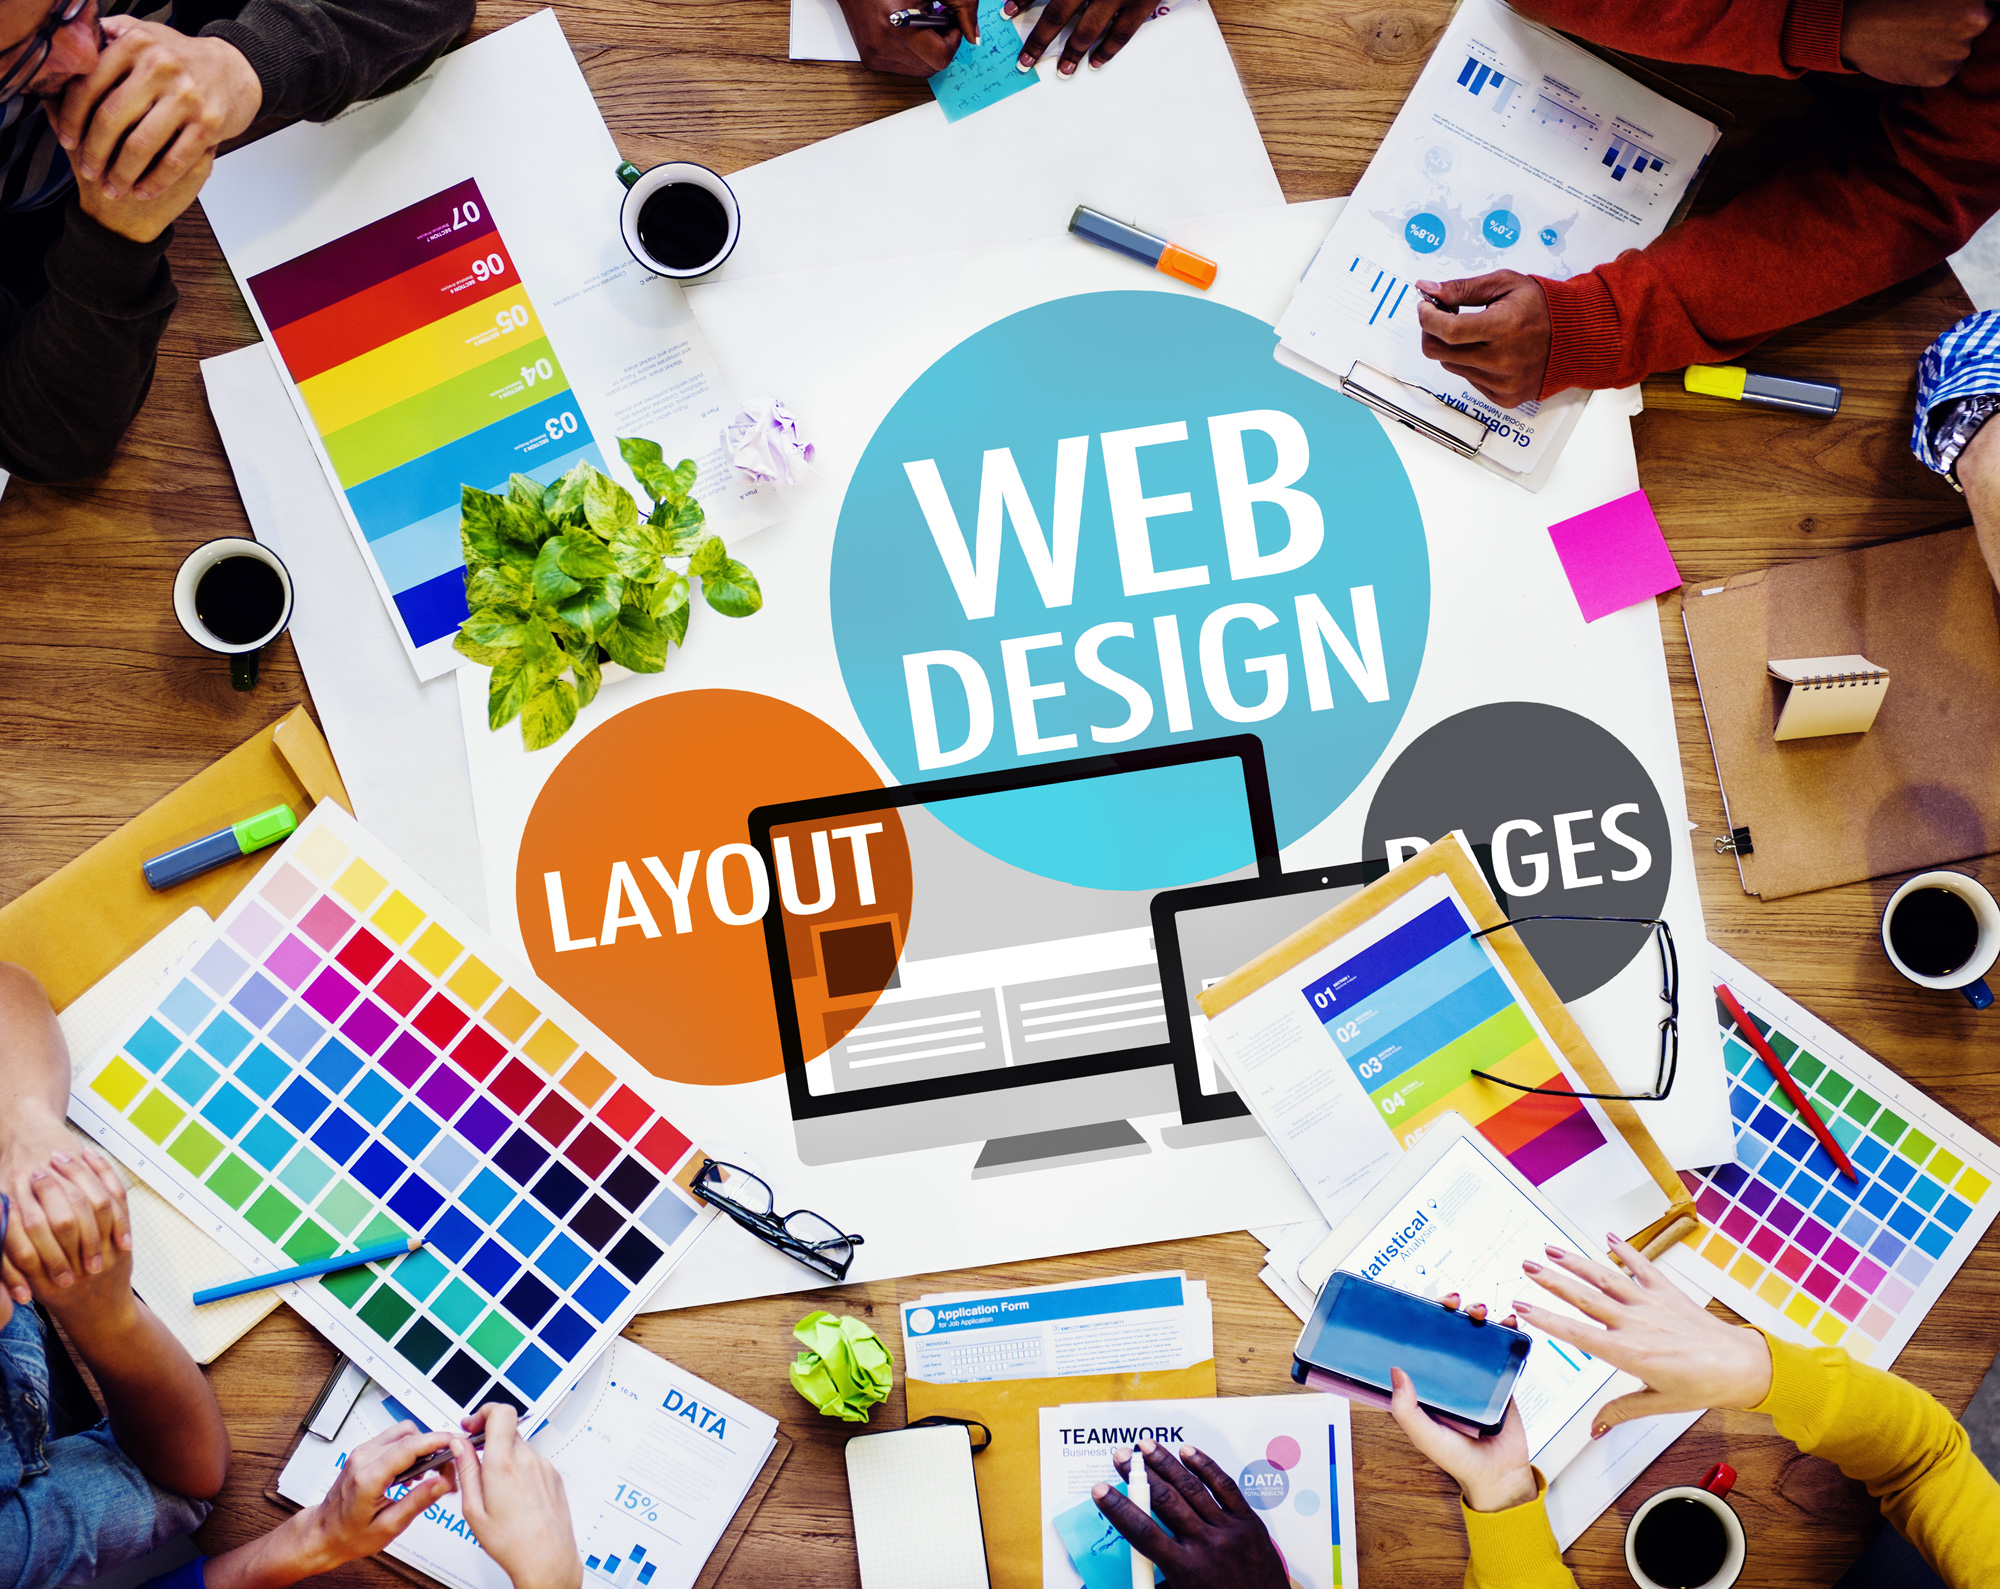 5 Tips for Effective Web Design